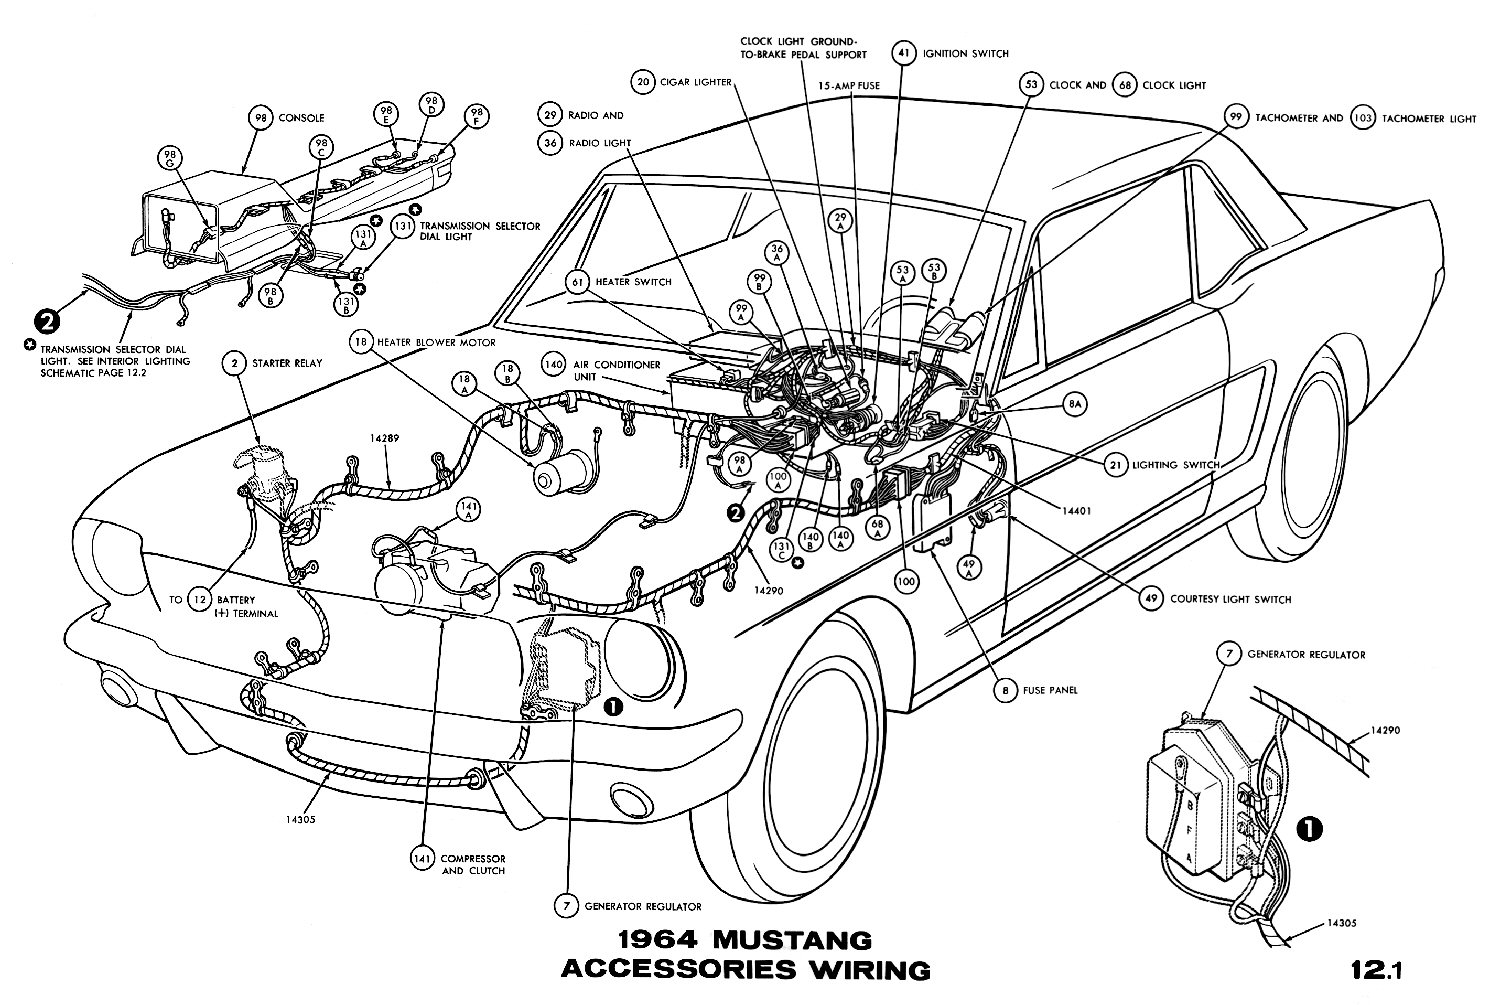 1964 Mustang Wiring Diagrams Average Joe Restoration 1950 Cadillac Reproduction Harness Sm1964l